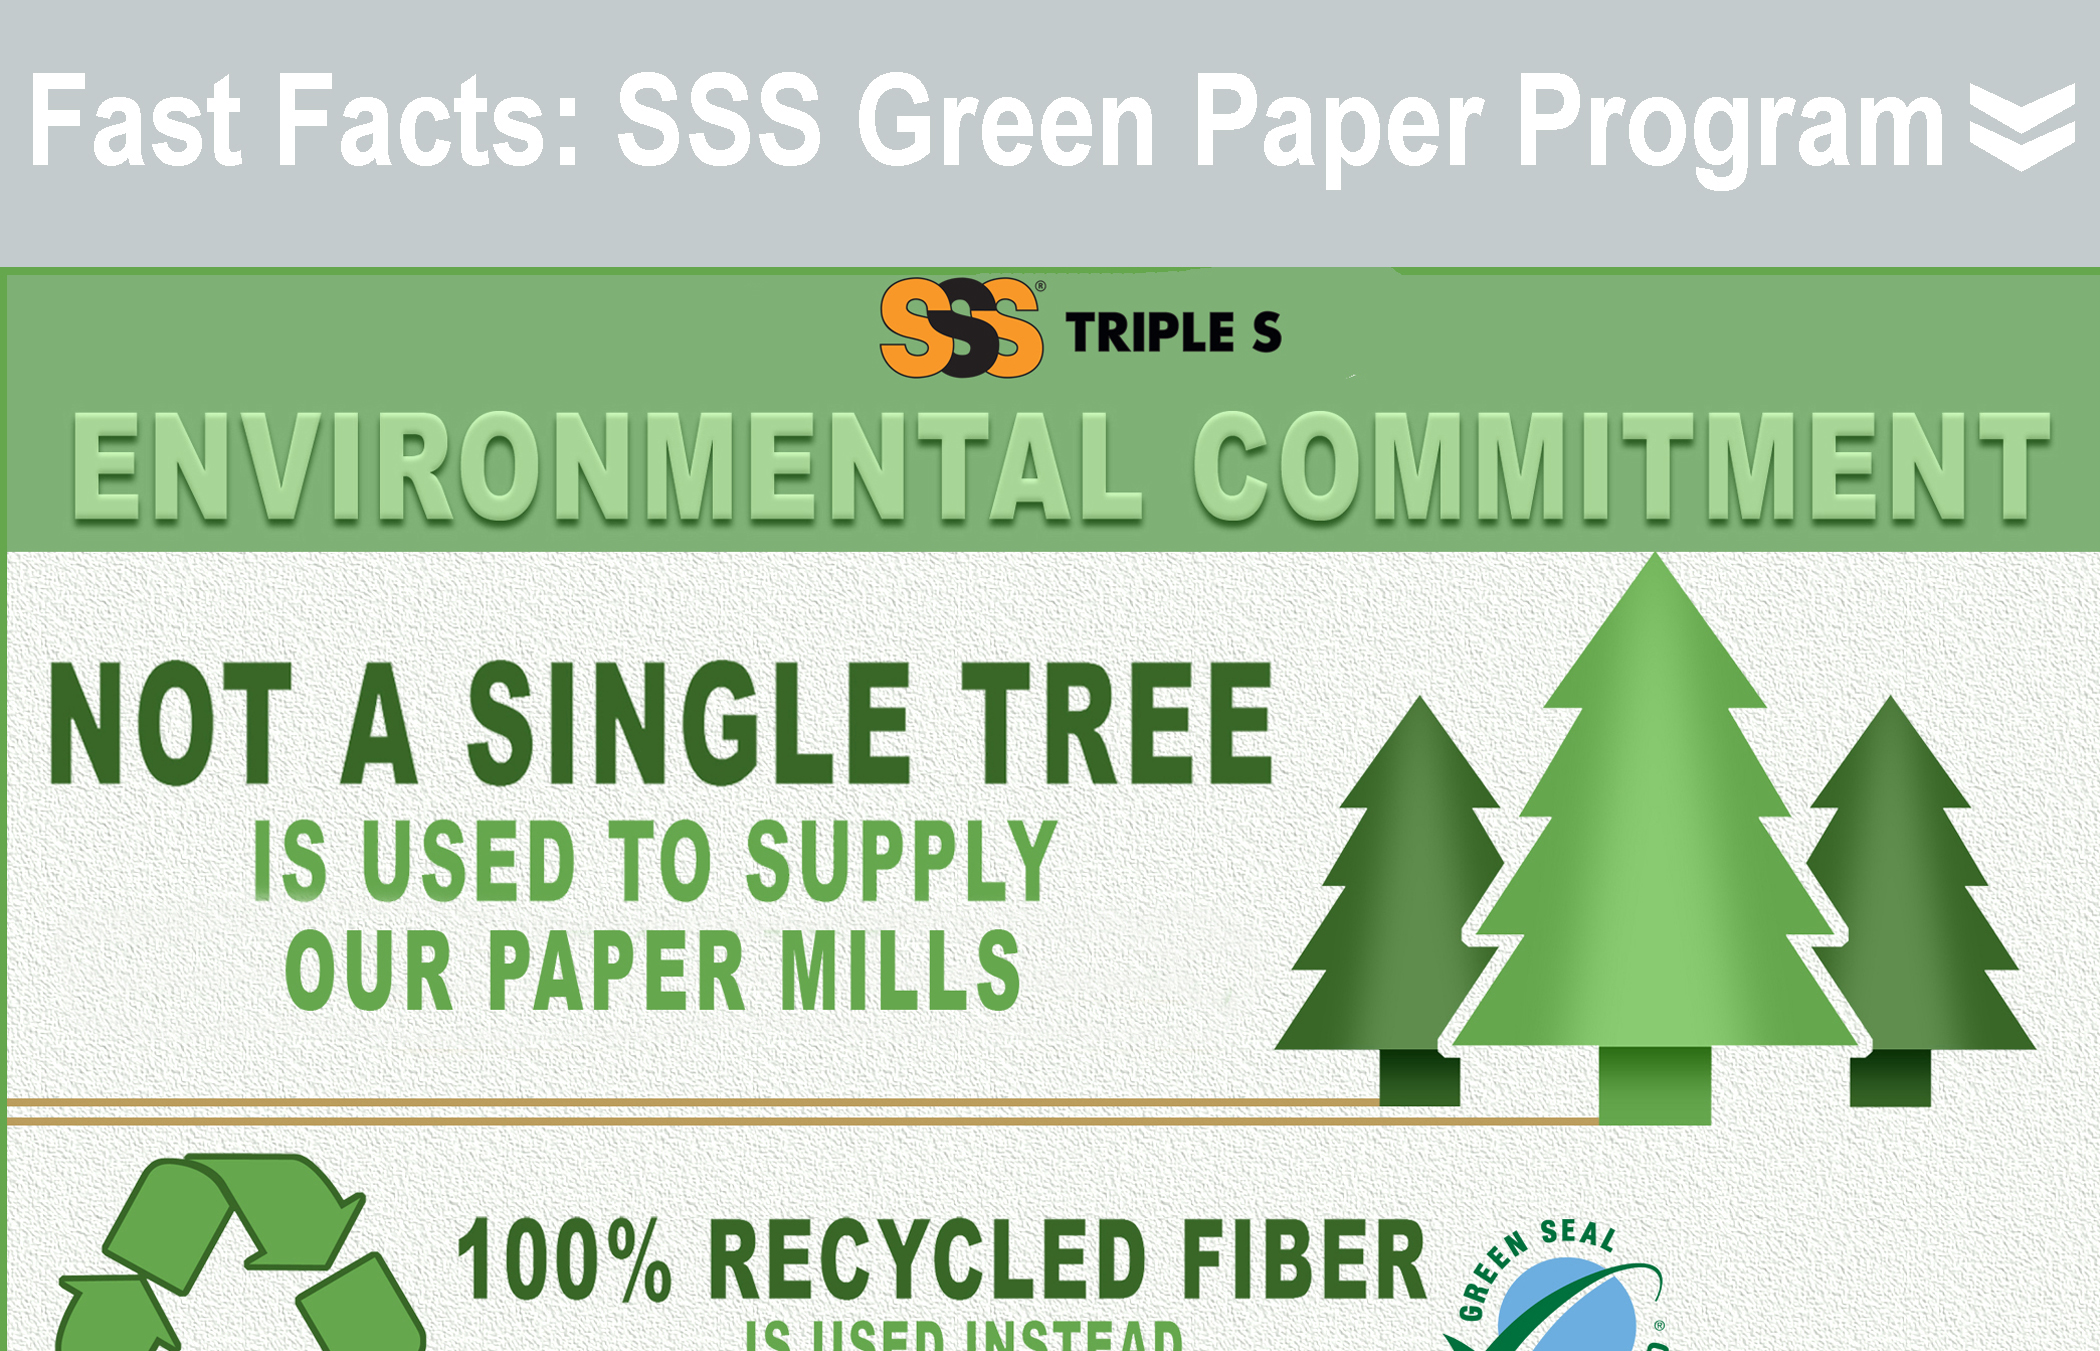 Fast Facts: SSS Green Paper Program